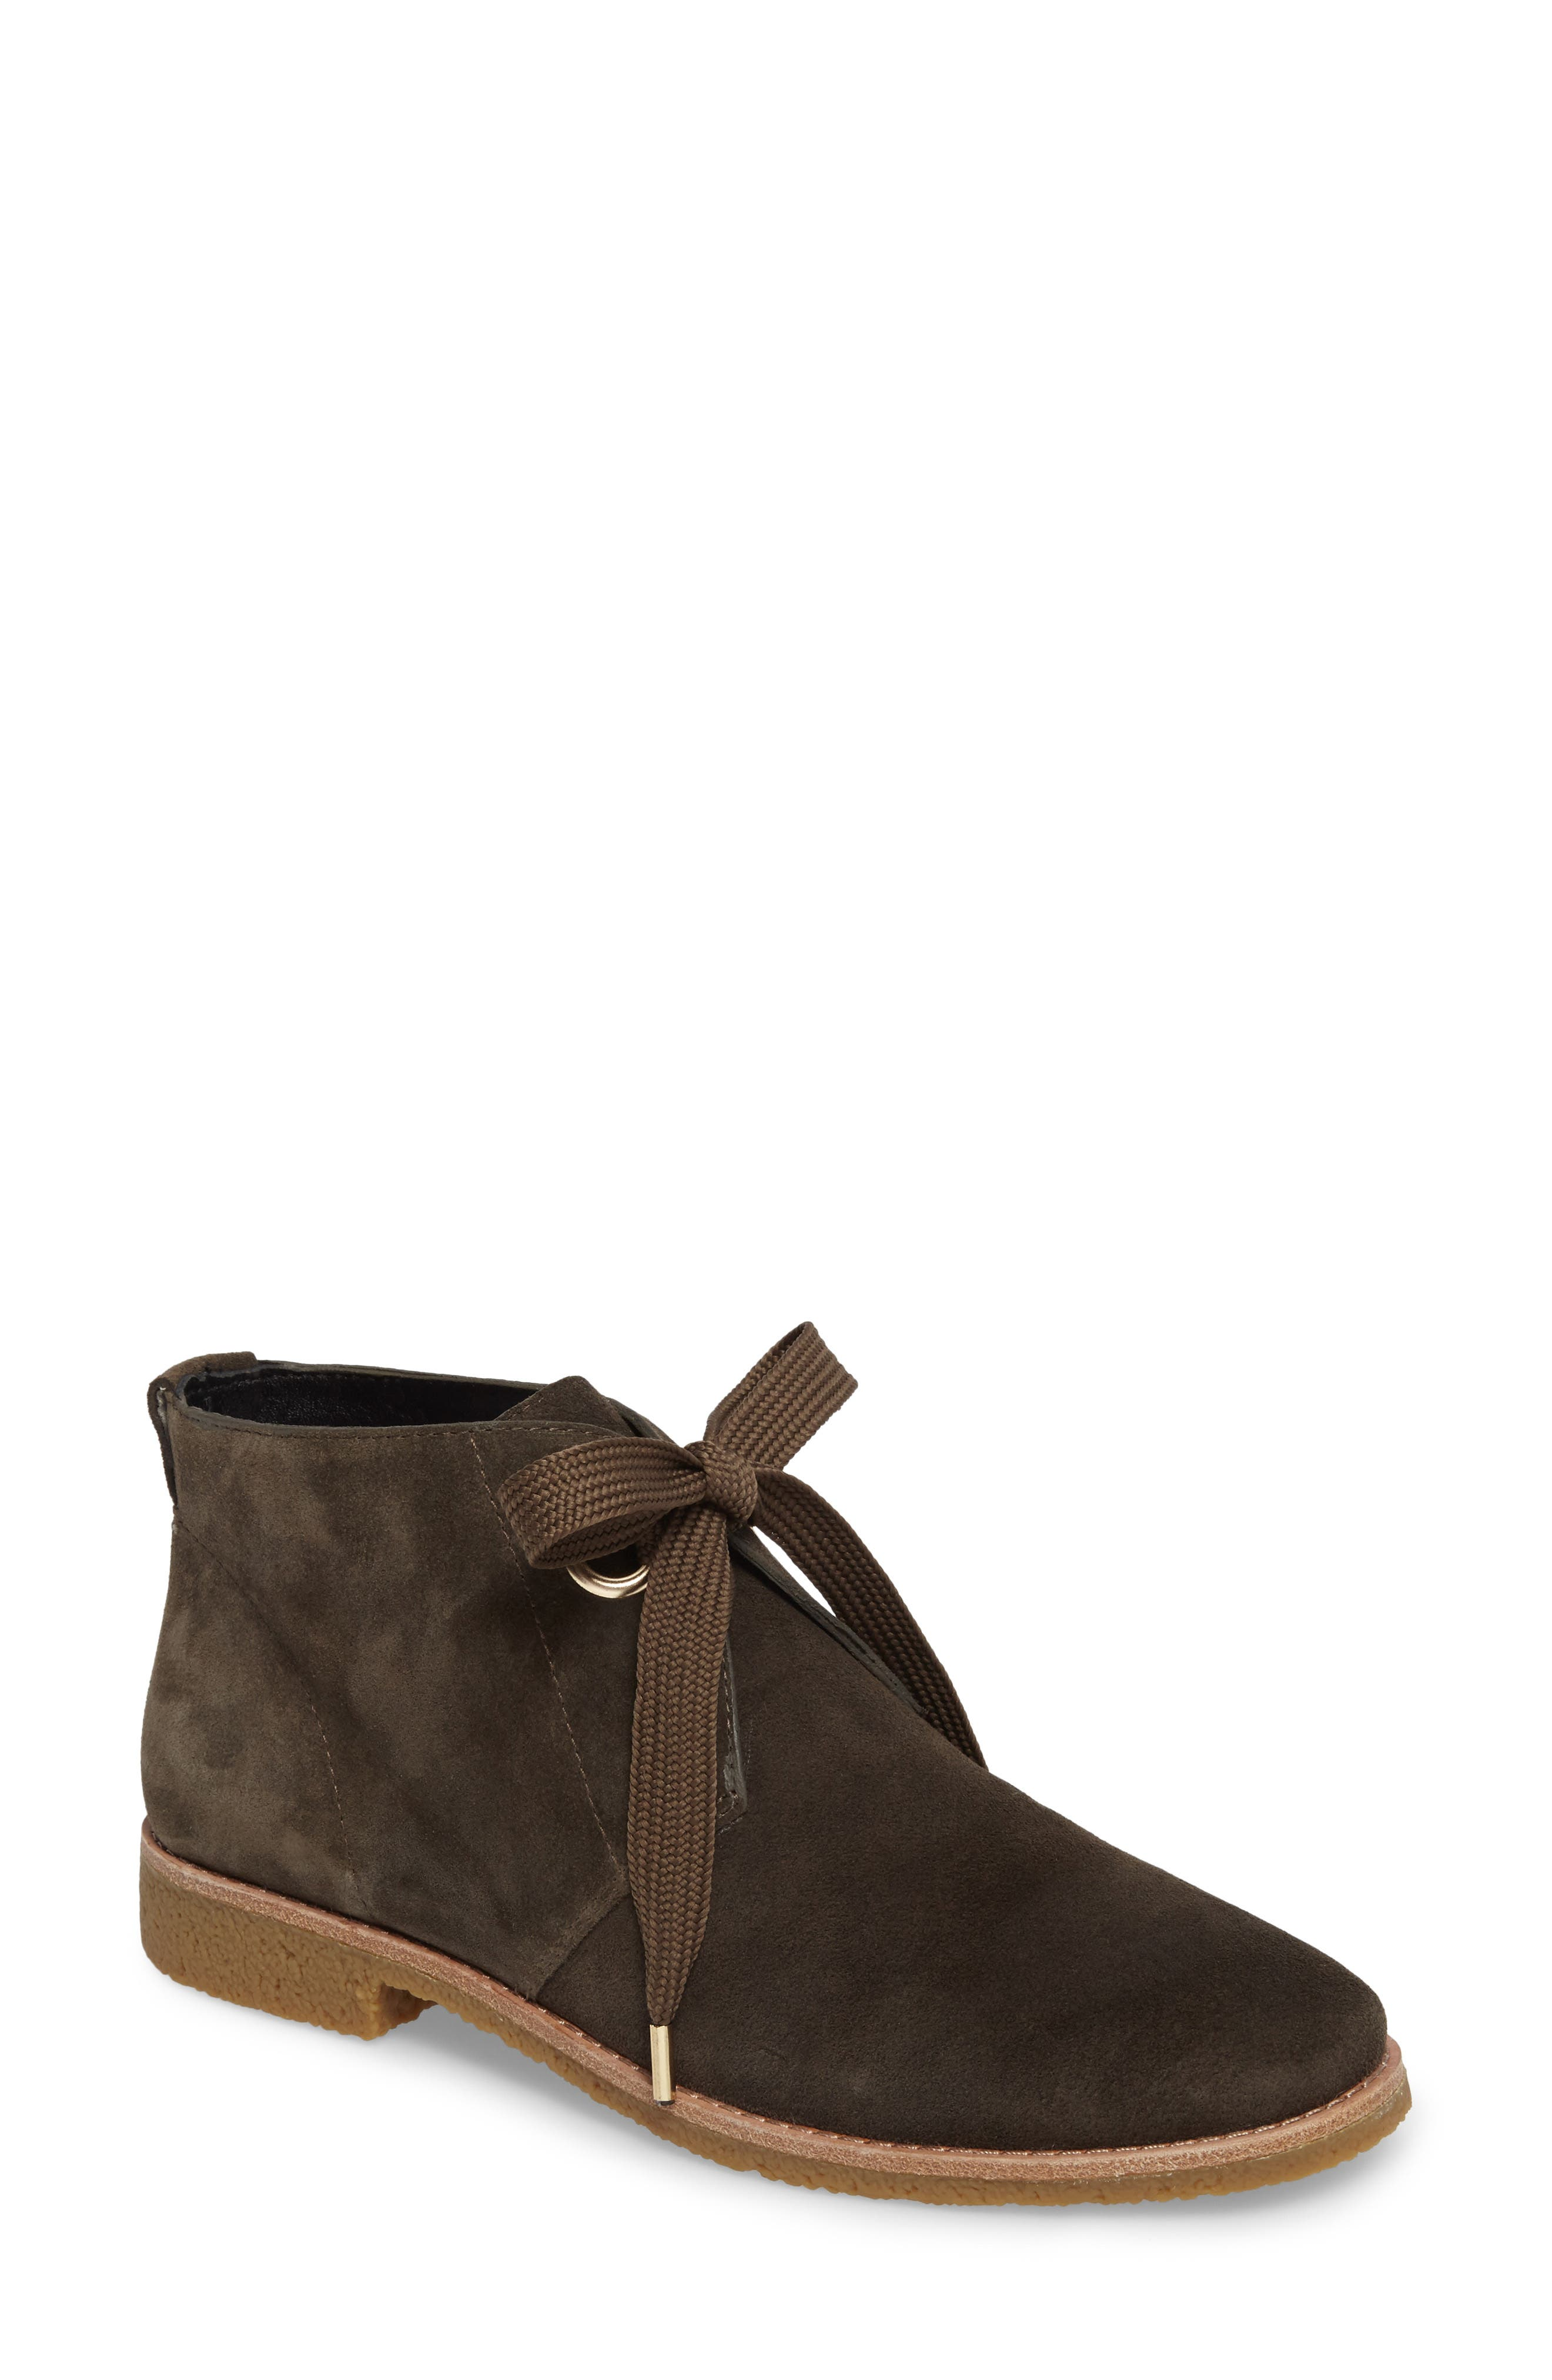 kate spade new york barrow chukka boot (Women)